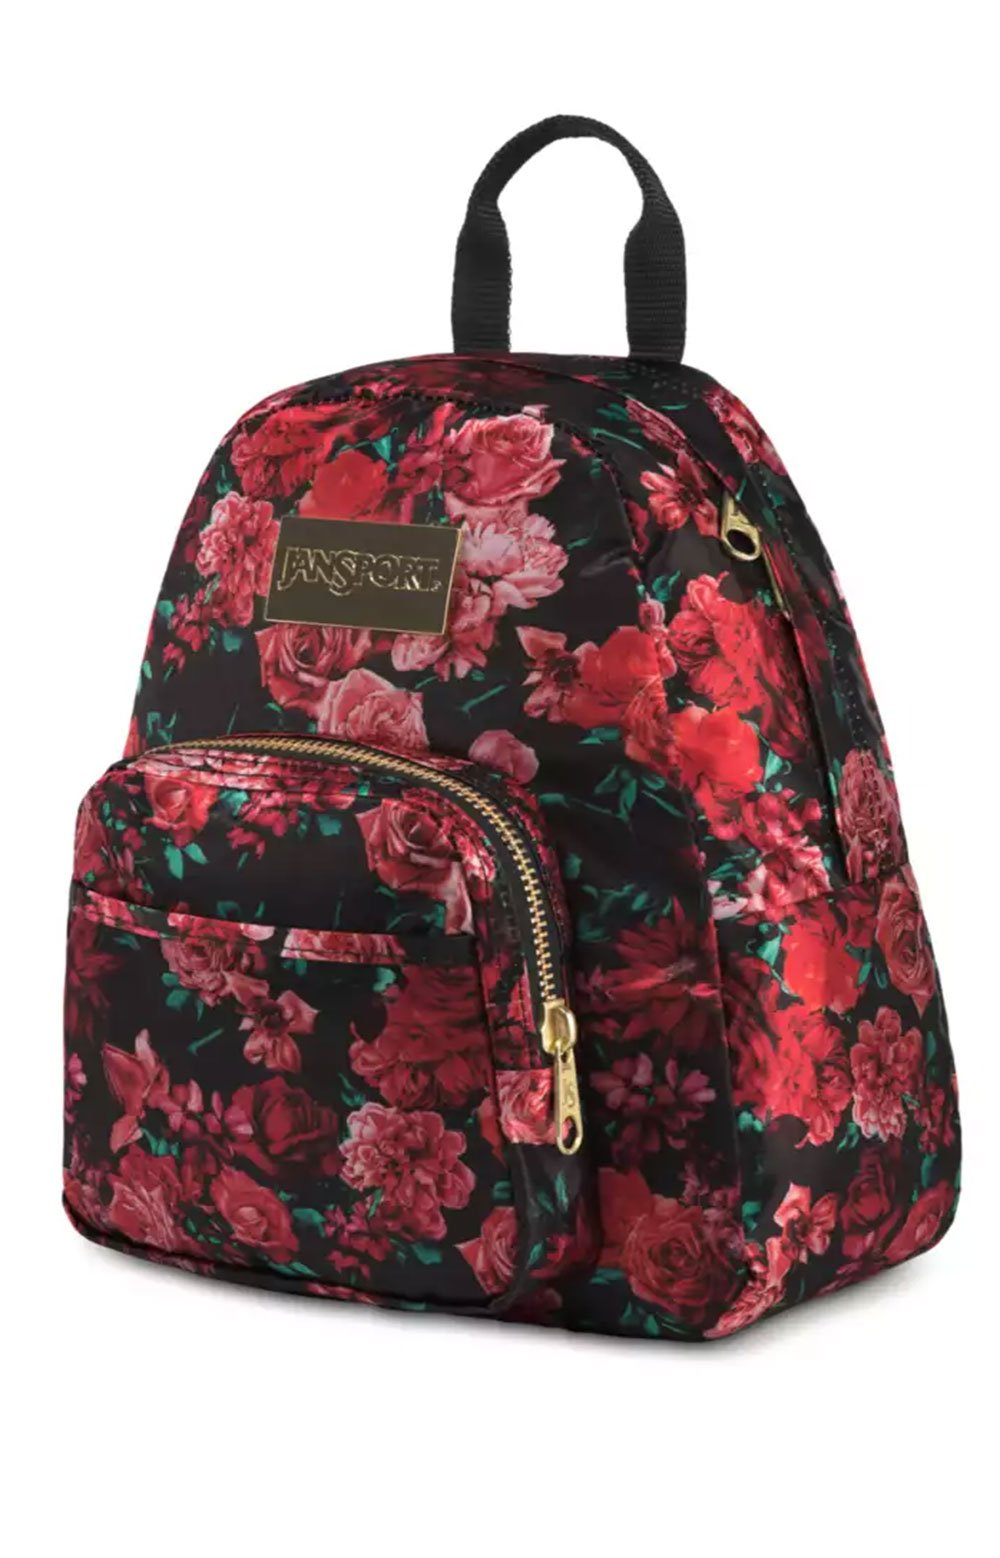 Half Pint Luxe Backpack - Luxe Rose 2